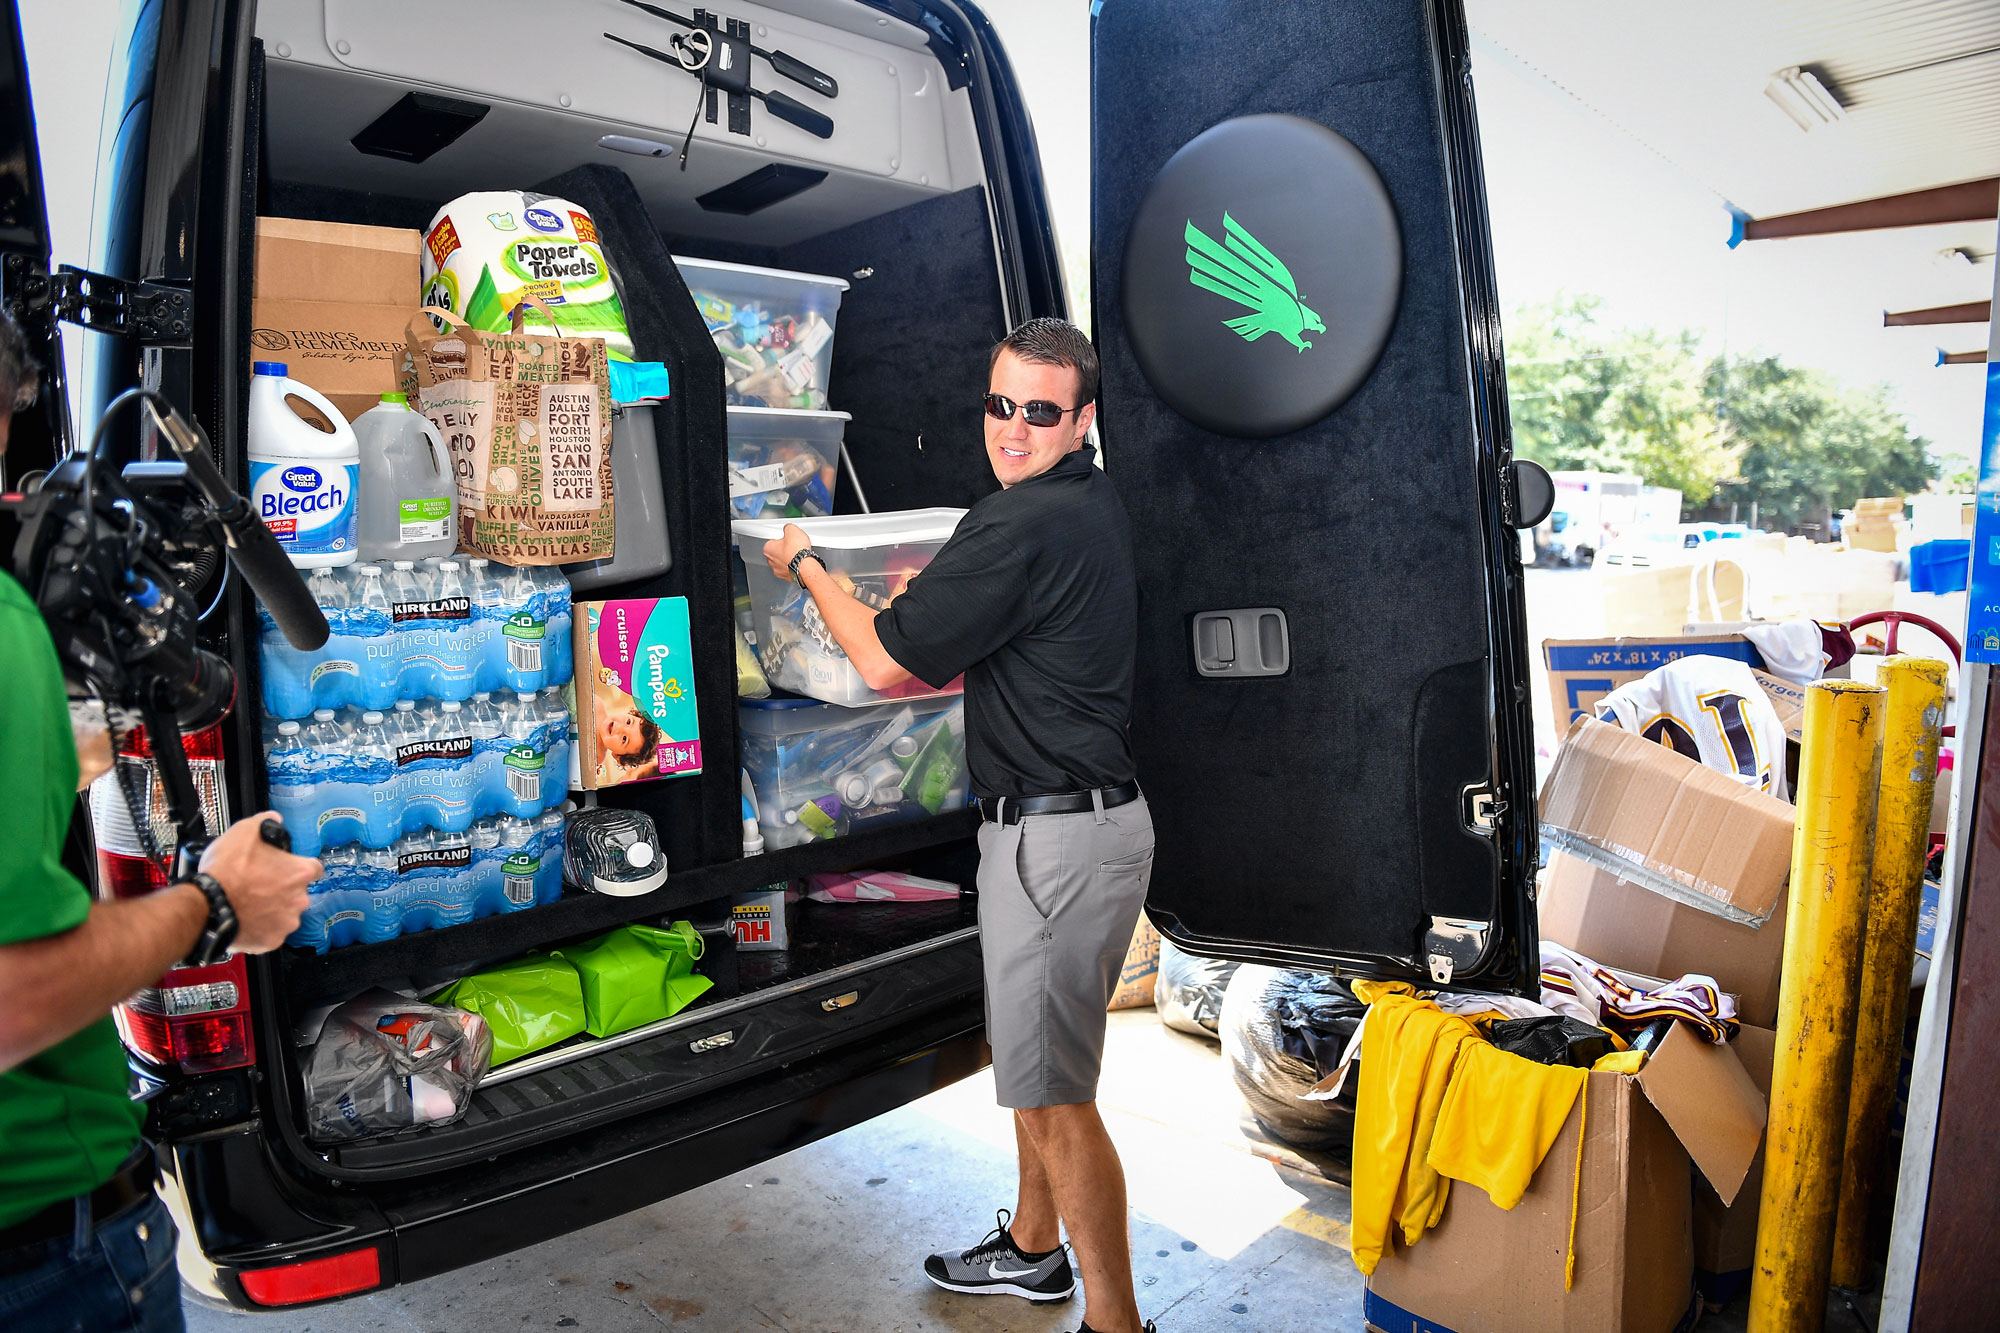 Pictured is Ryan L Peck, Executive Senior Associate Athletic Director for External Affairs, who is delivering supplies for those affected by Hurricane Harvey.